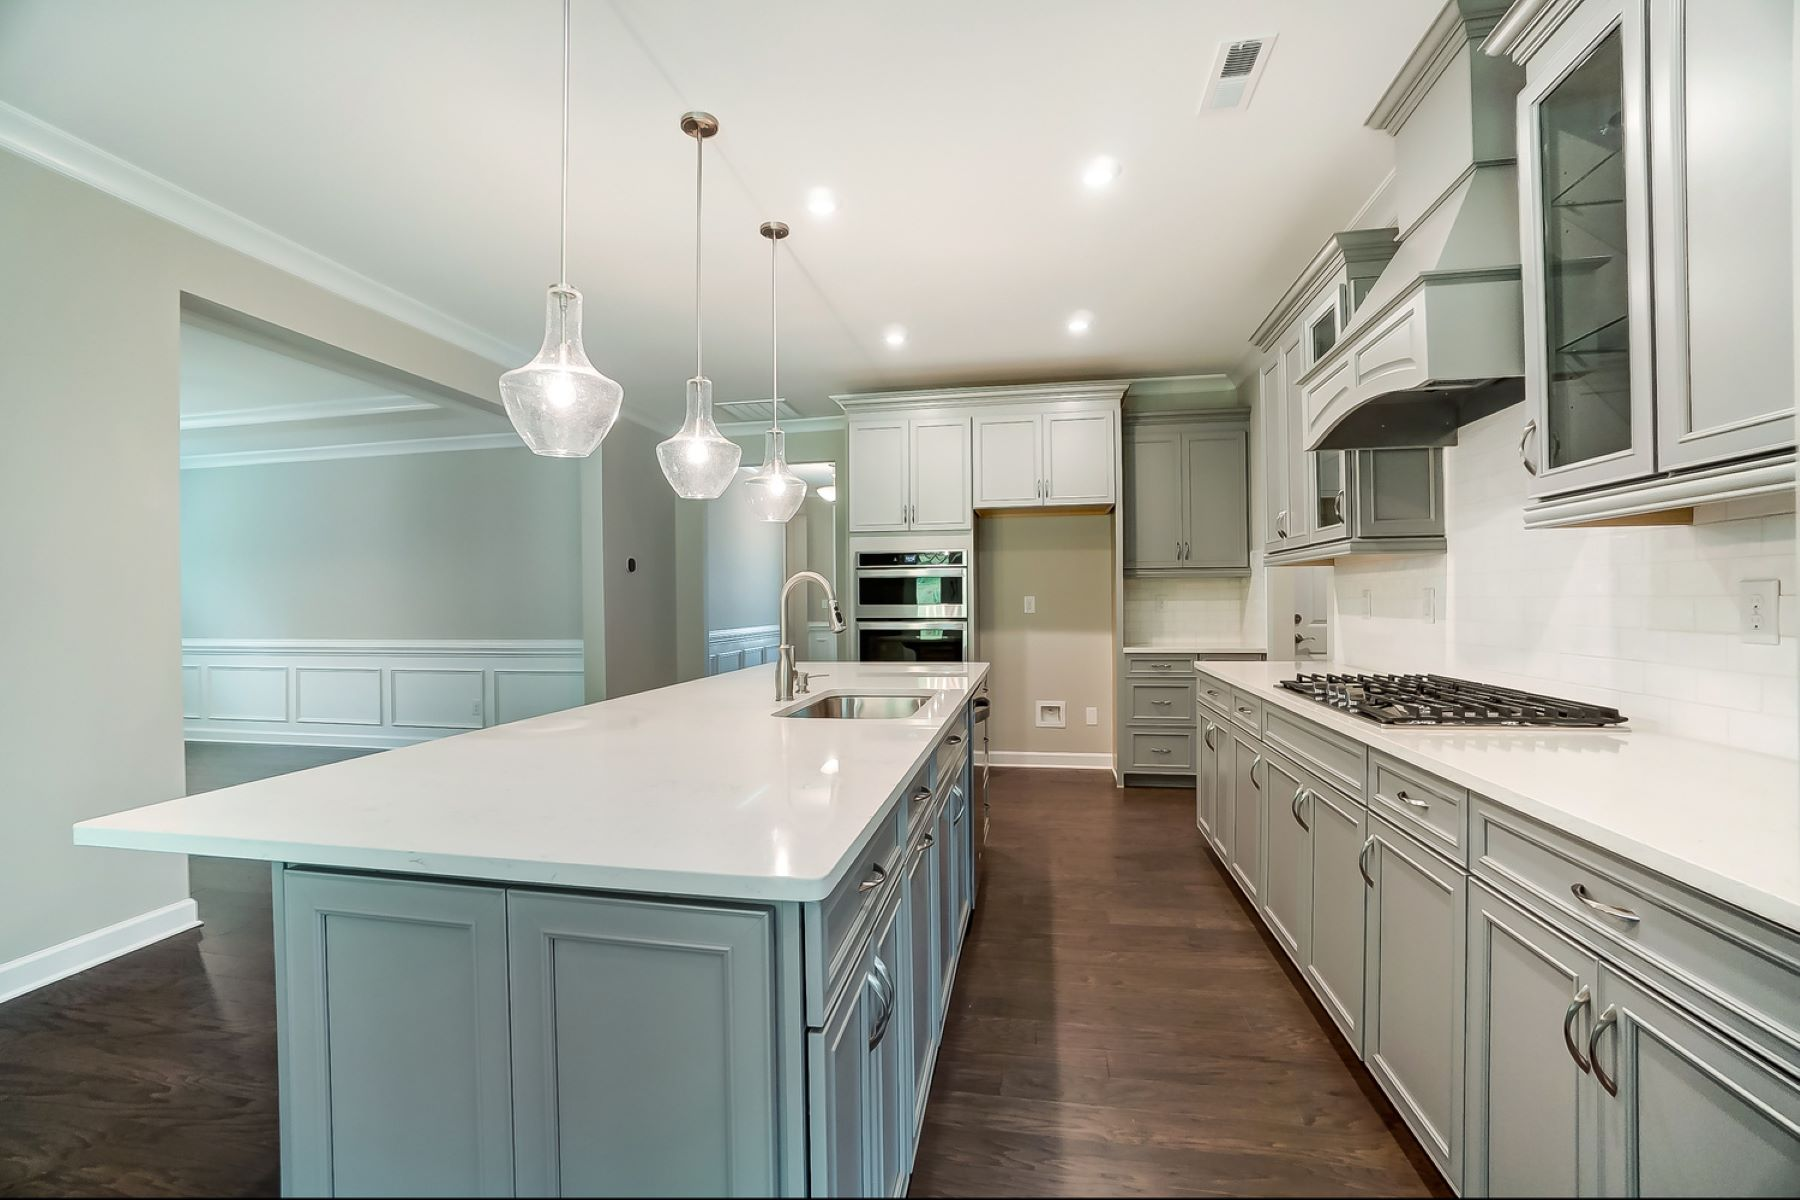 Sonata at Mint Hill Kitchen in Mint Hill North Carolina by Mattamy Homes